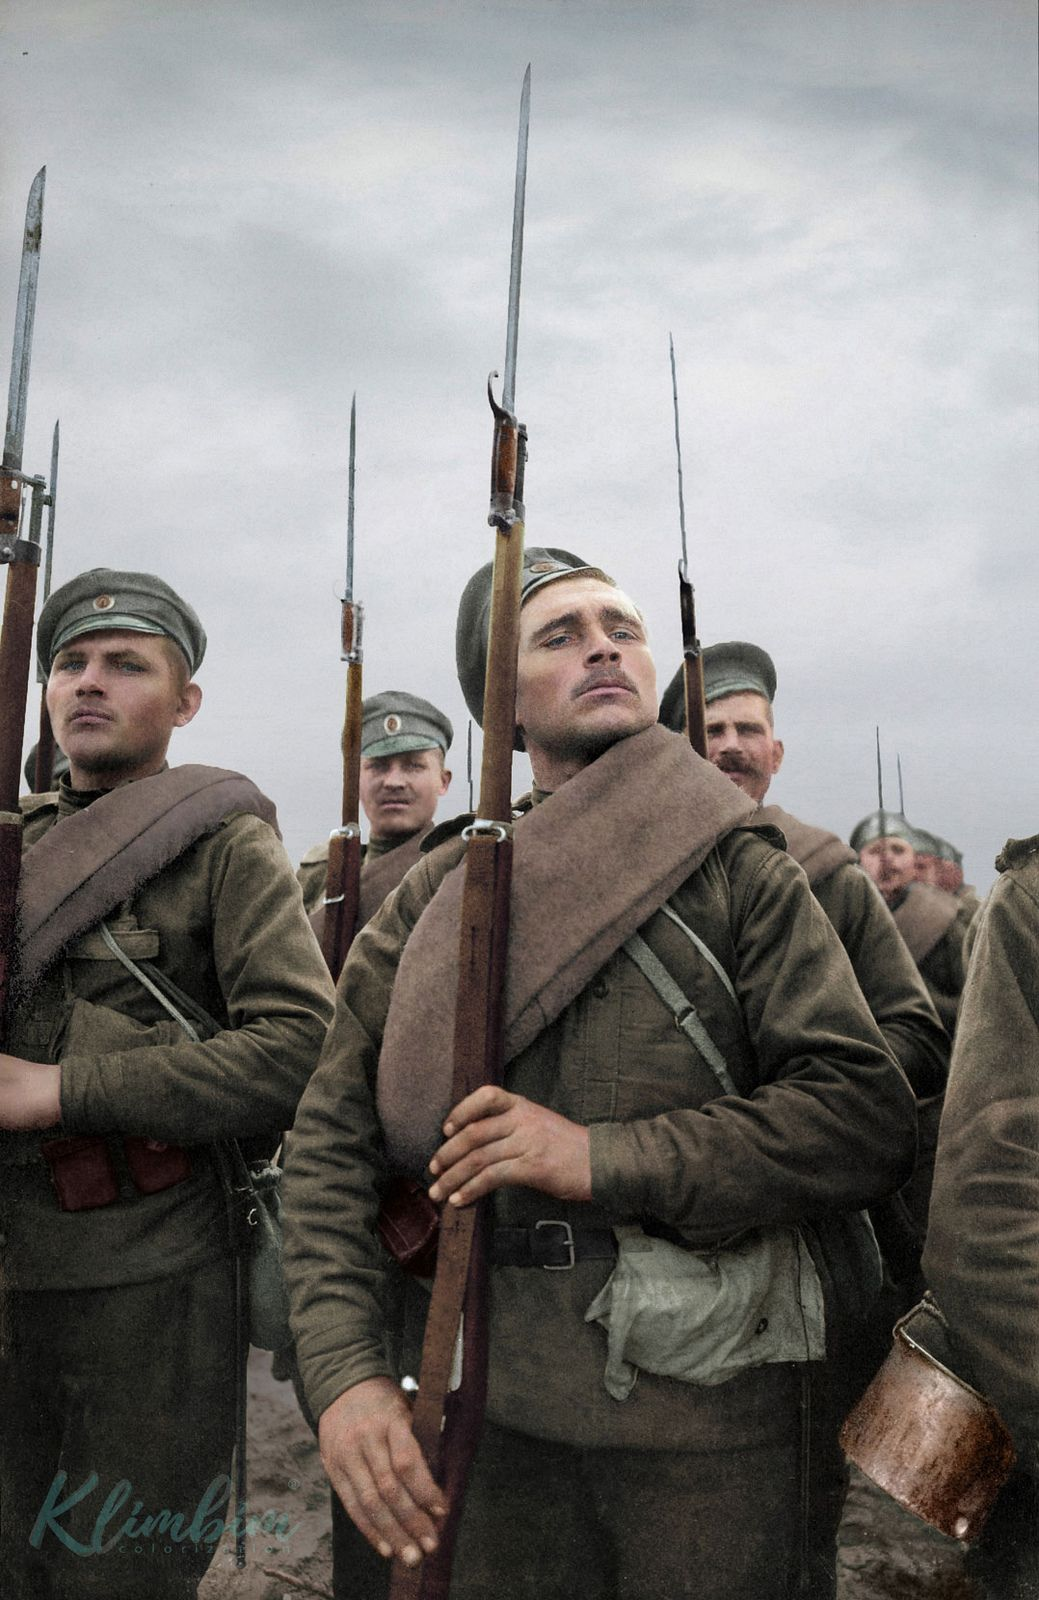 788dcbbd1c7 Russian soldiers with Arisaka rifles